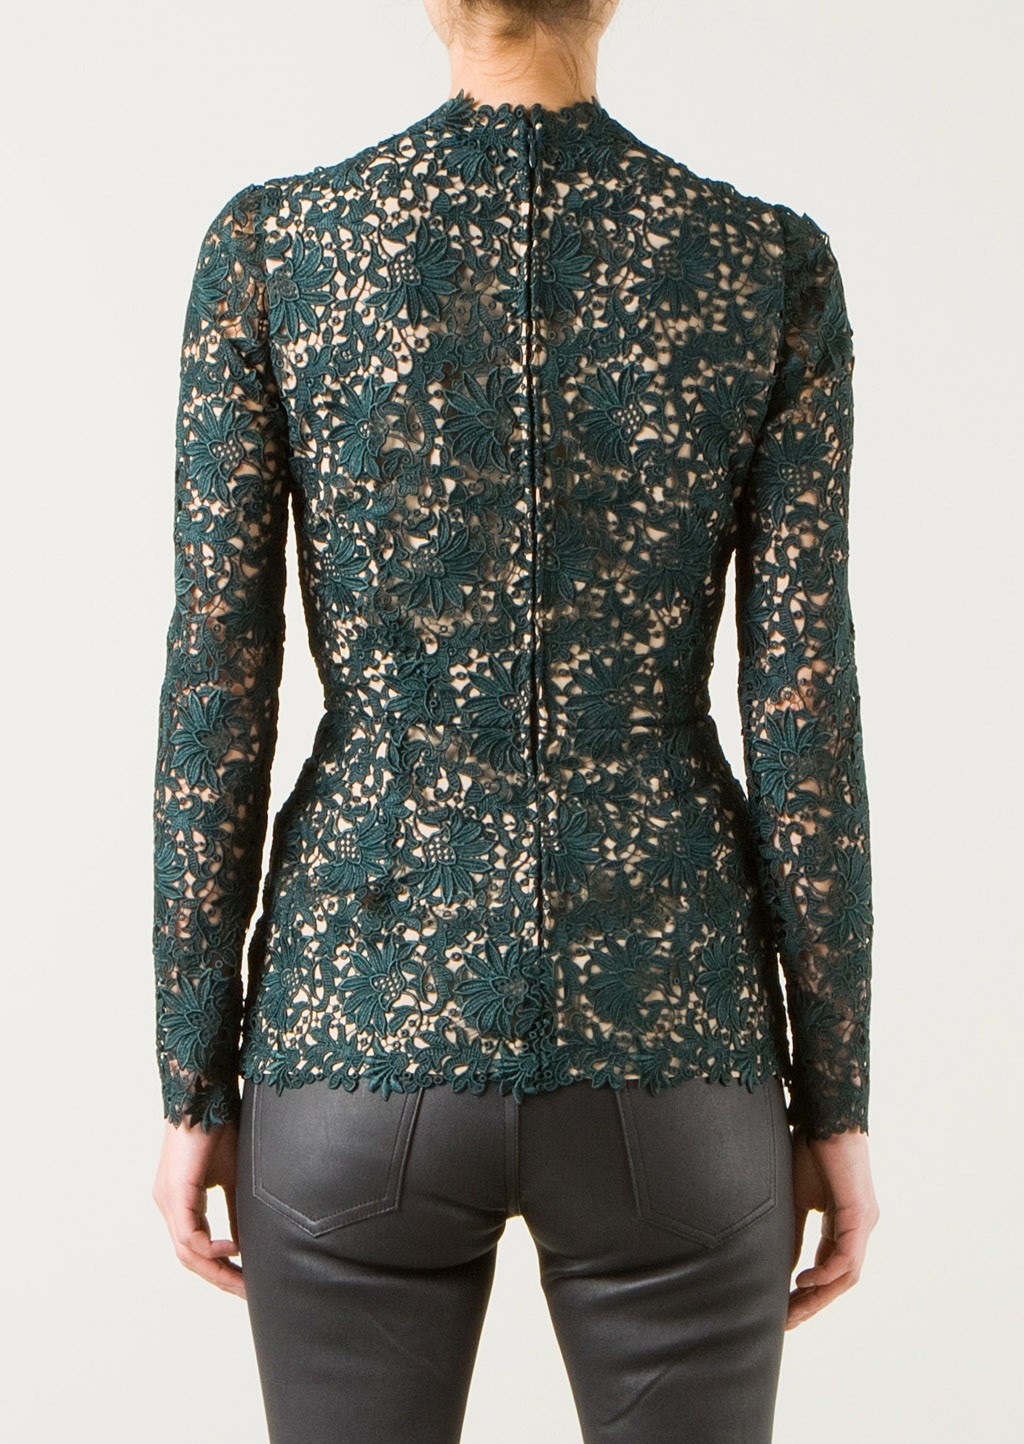 Stella mccartney Green Lace Top in Green | Lyst